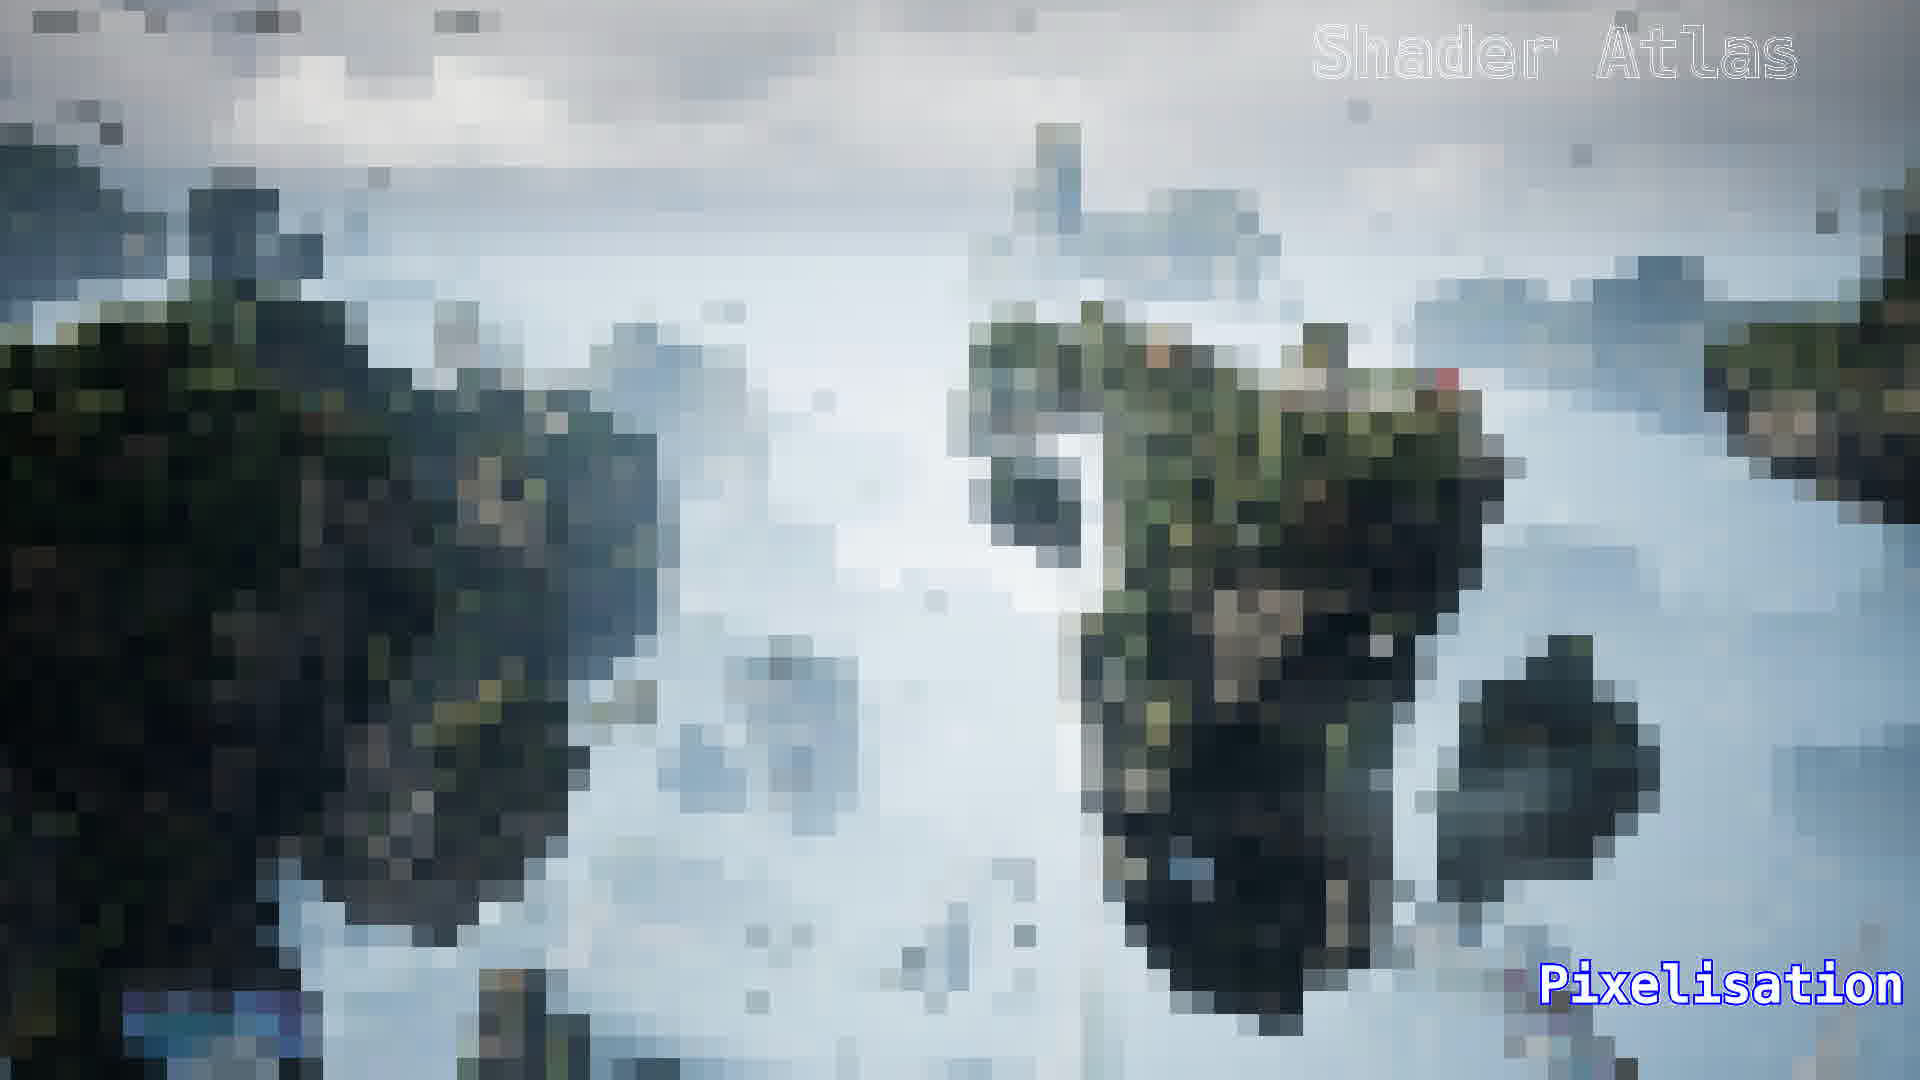 Shader Atlas by Code 4 Game